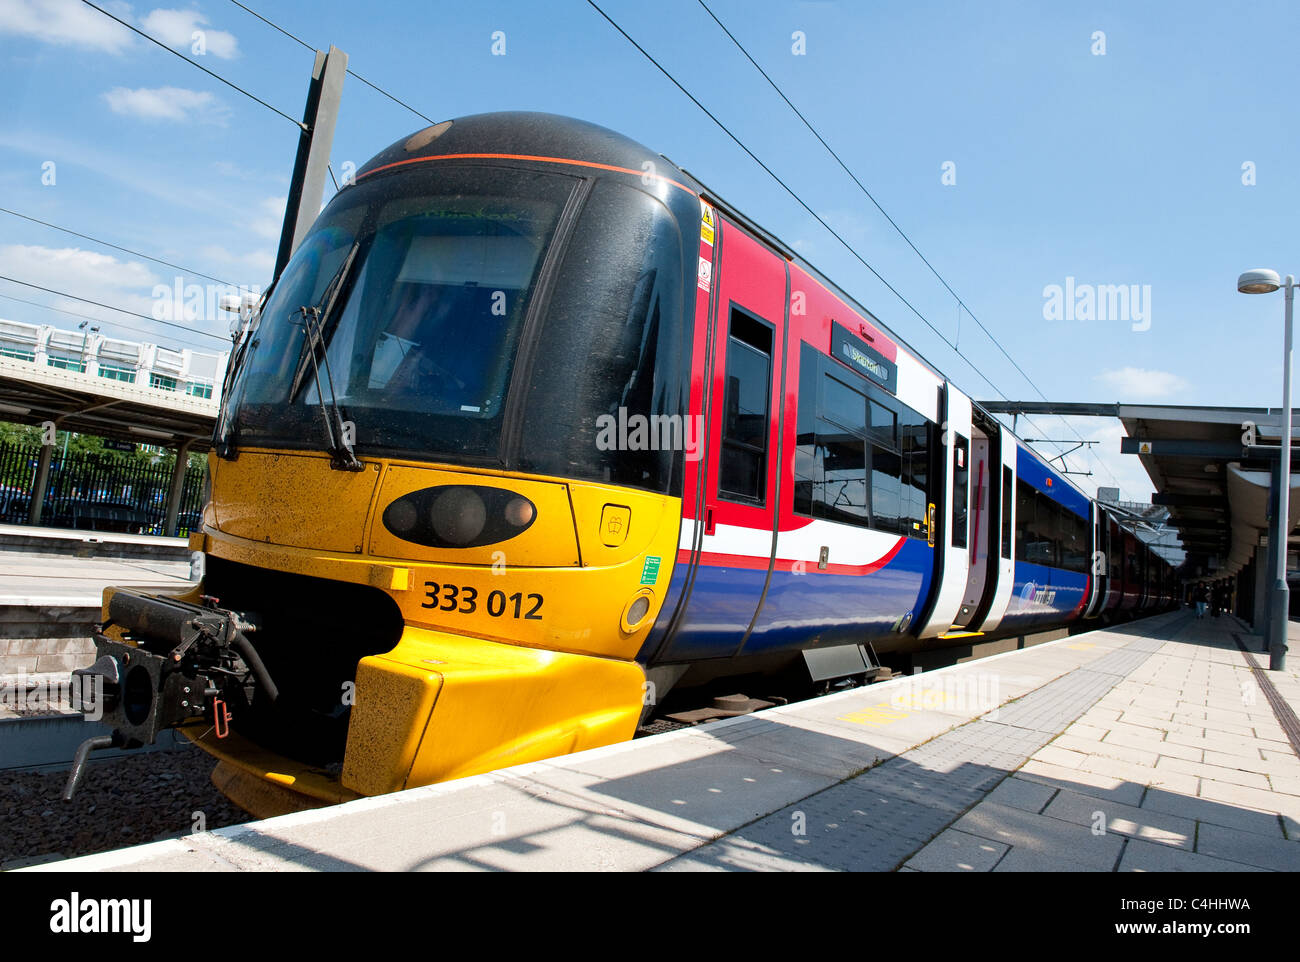 Class 333 train in Northern Rail livery at Leeds railway station in England. - Stock Image